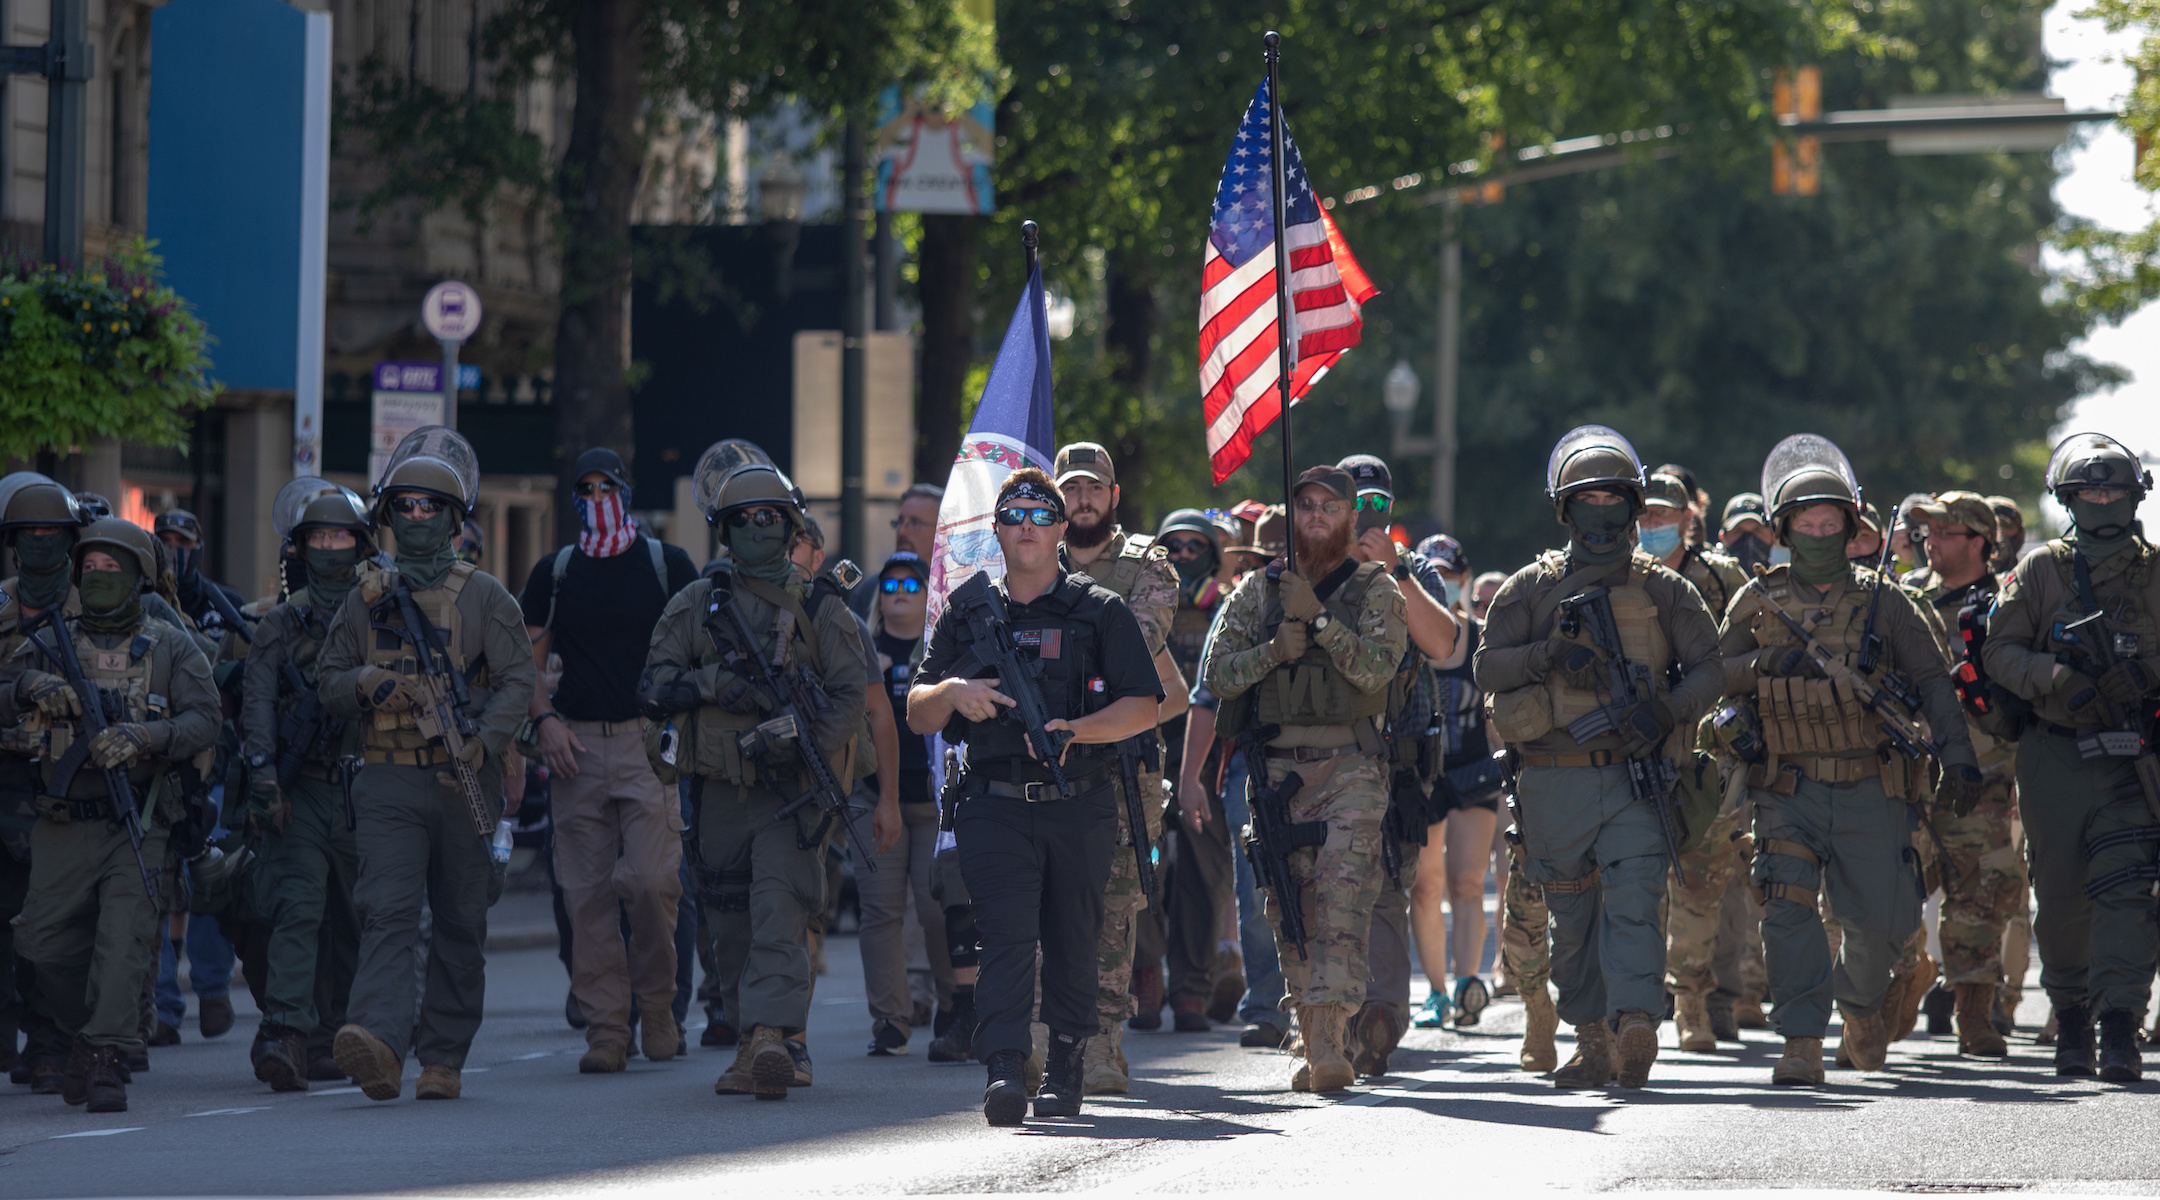 Armed gun rights protesters, led by a member of the far-right Boogaloo boys, march in Richmond, Virginia on August 18, 2020. (Chad Martin/LightRocket via Getty Images)